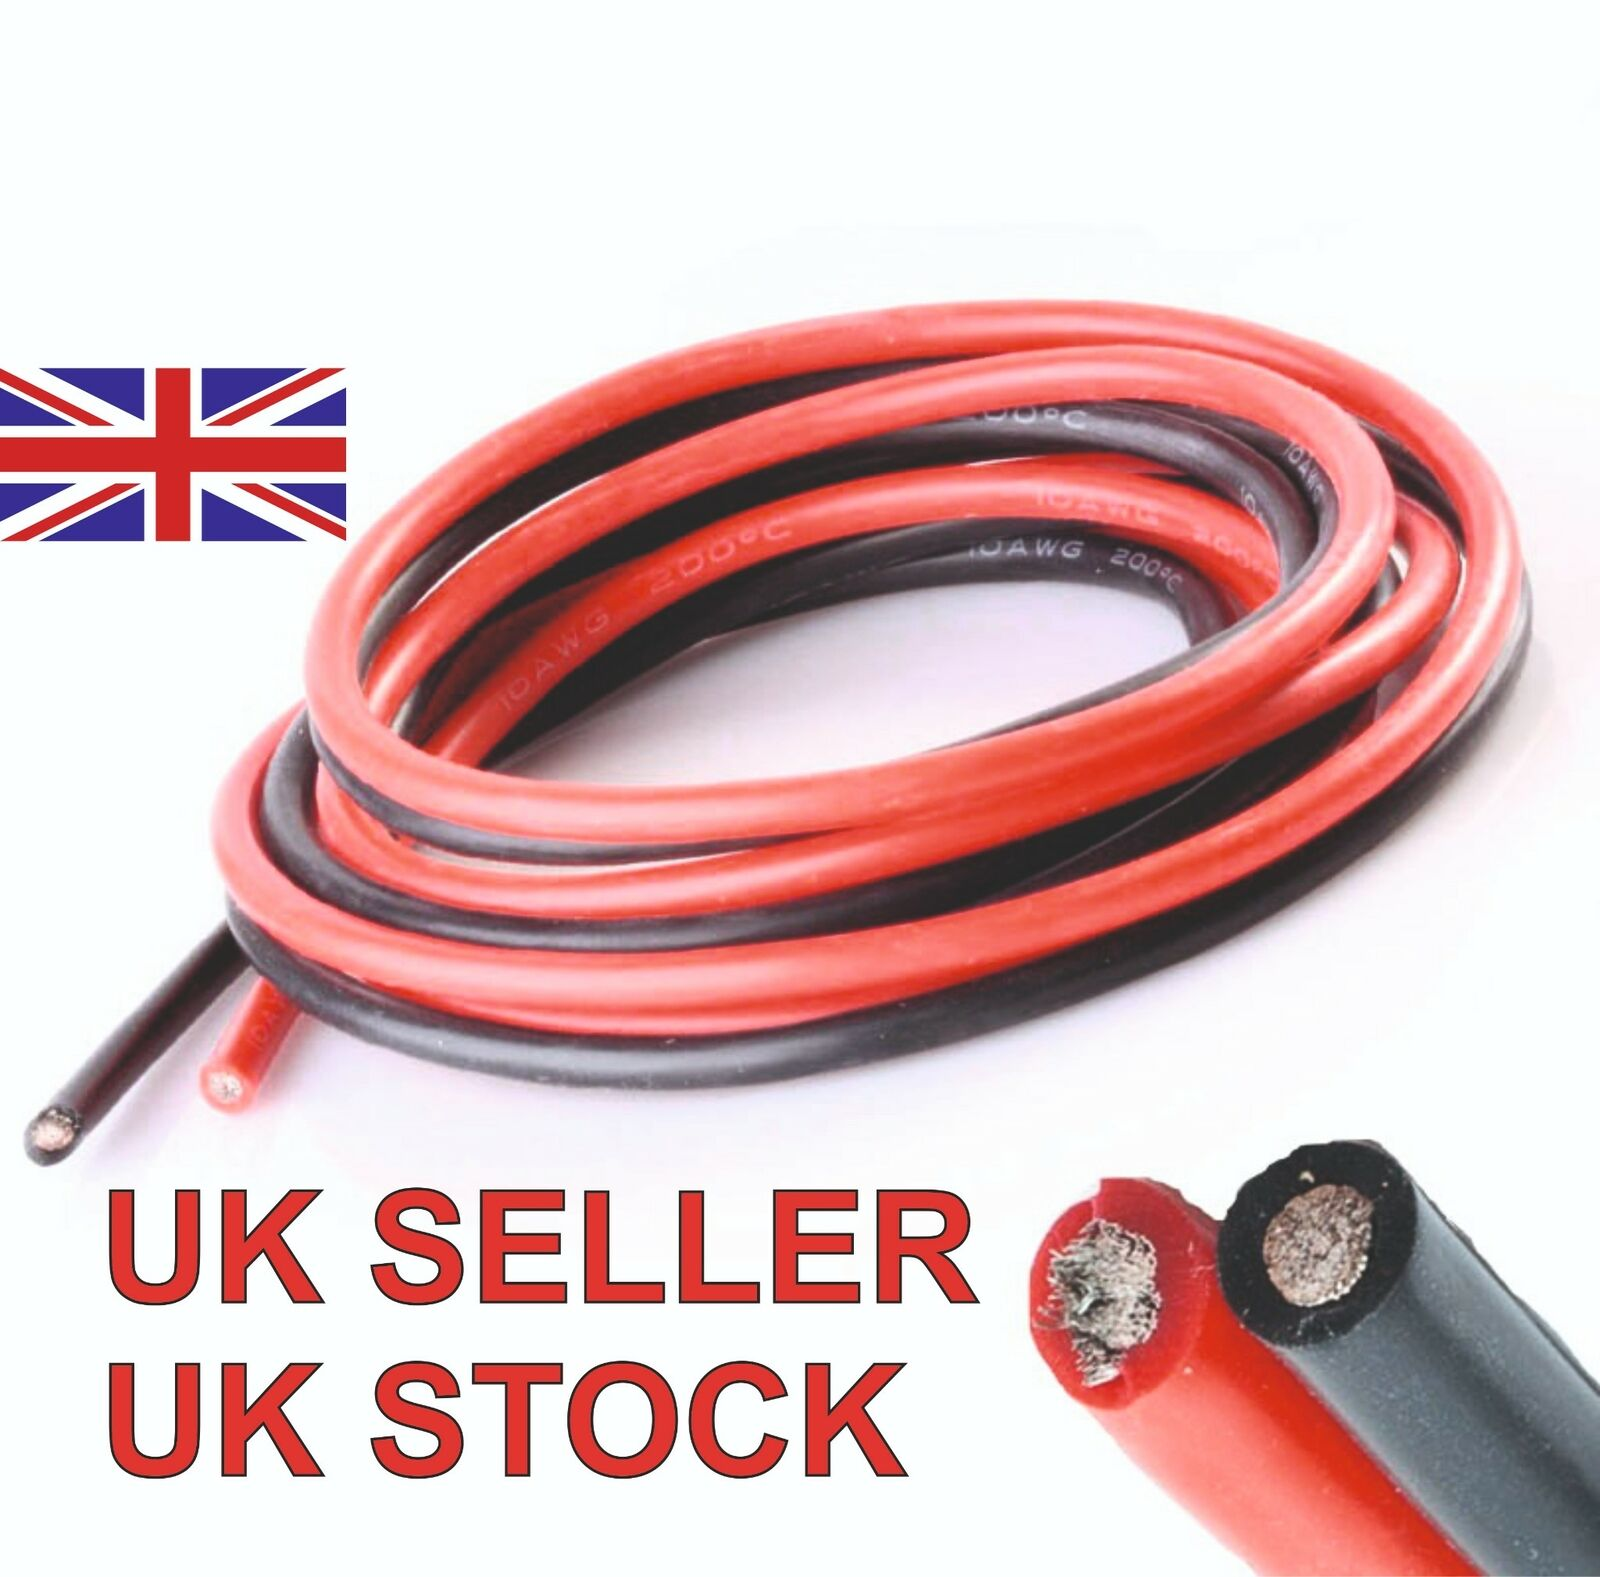 Silicone Wire Cable 8 AWG 1 Metre Each Red + Black Soft Flexible High Quality UK